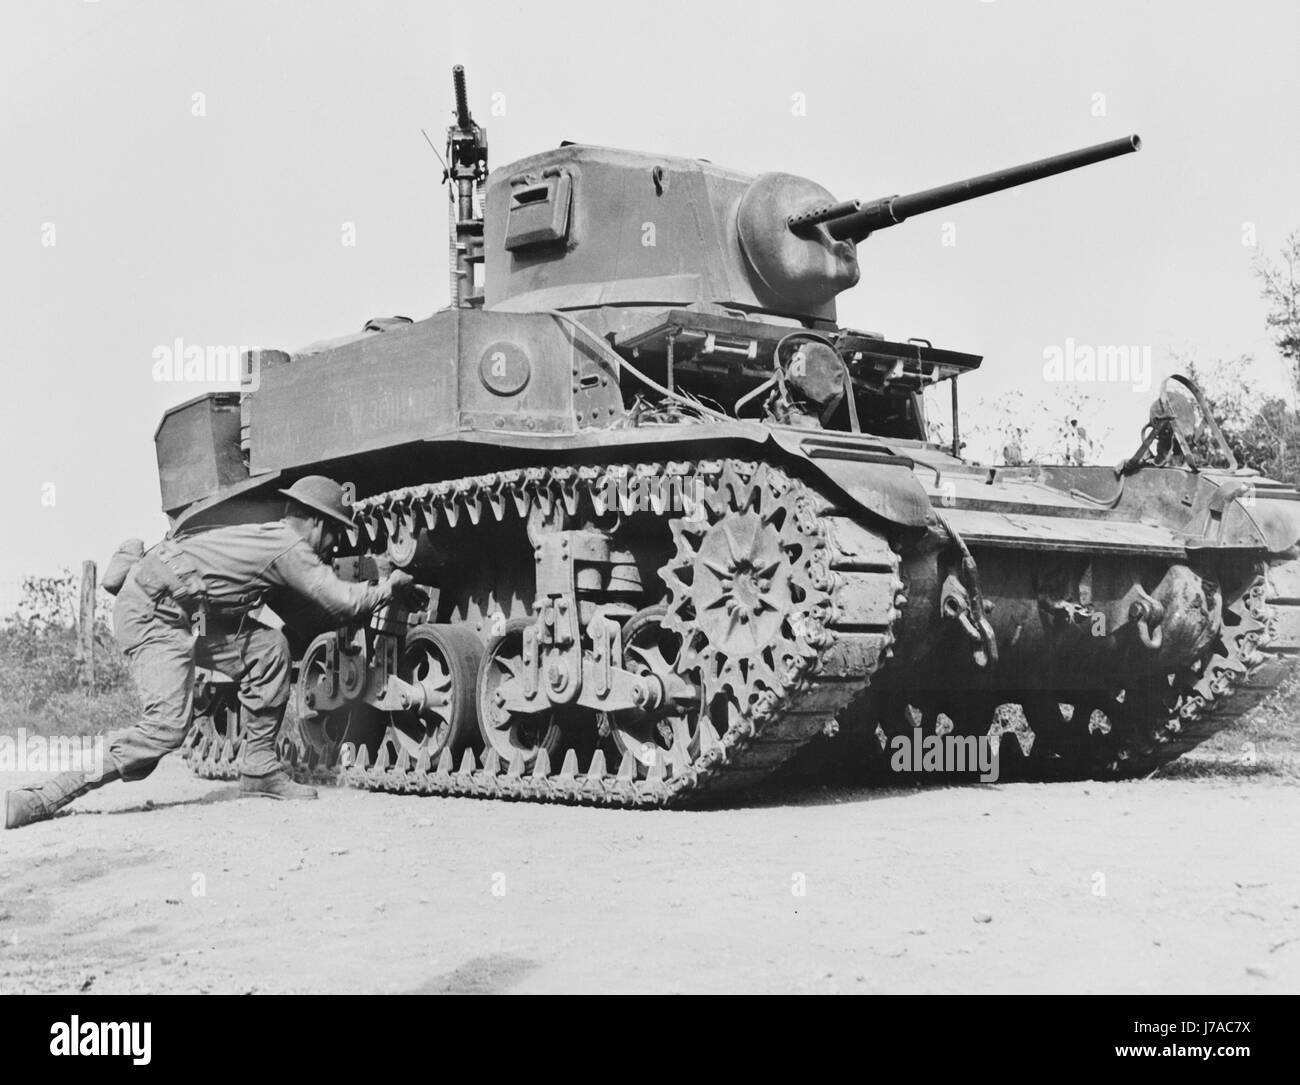 A soldier places a 29 pound TNT statchel charge on a light tank, circa 1942. - Stock Image